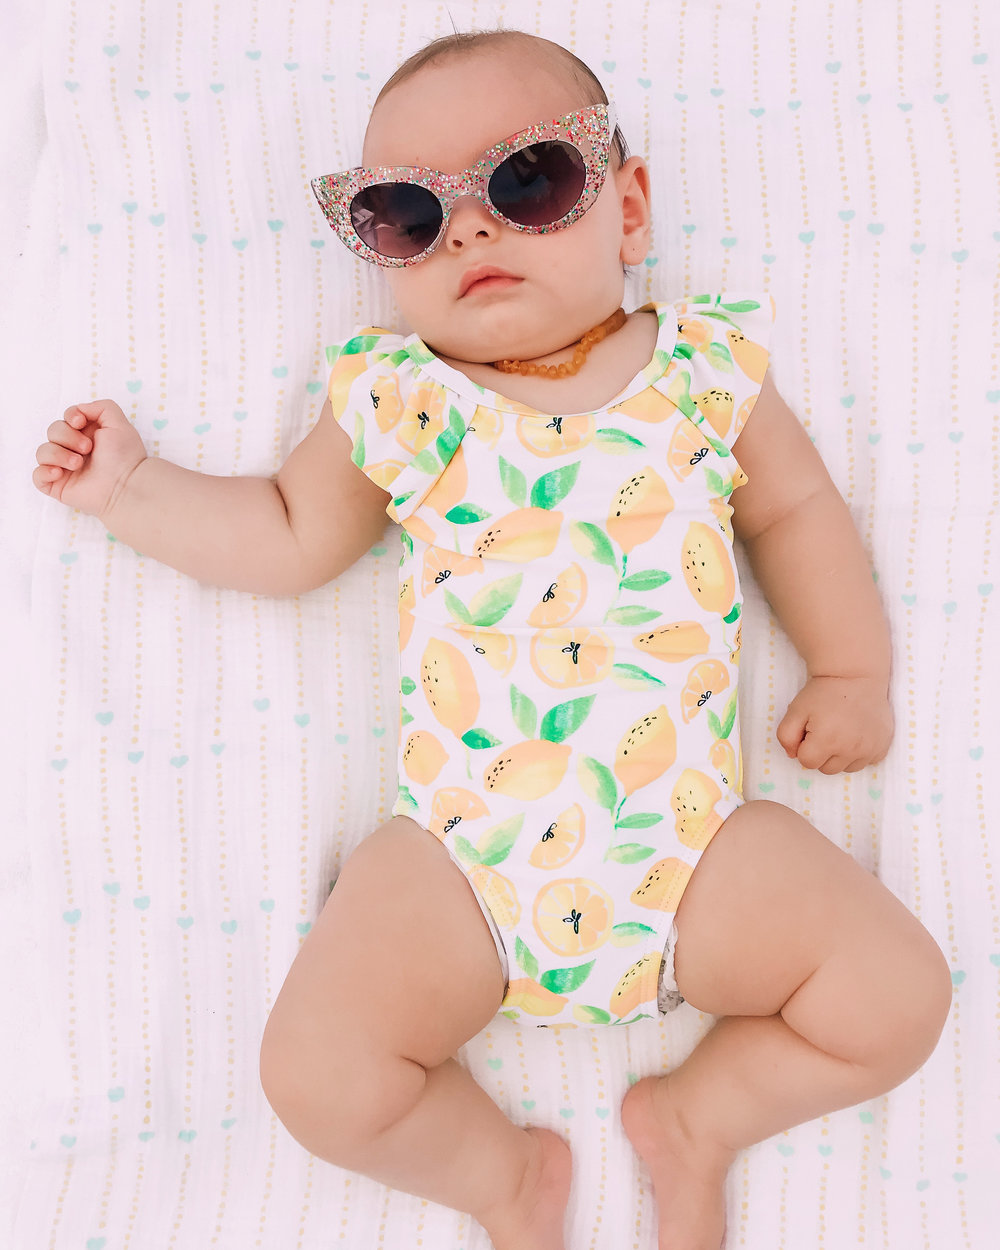 Adorable sleeping baby wearing retro sunglasses and a lemon swimsuit